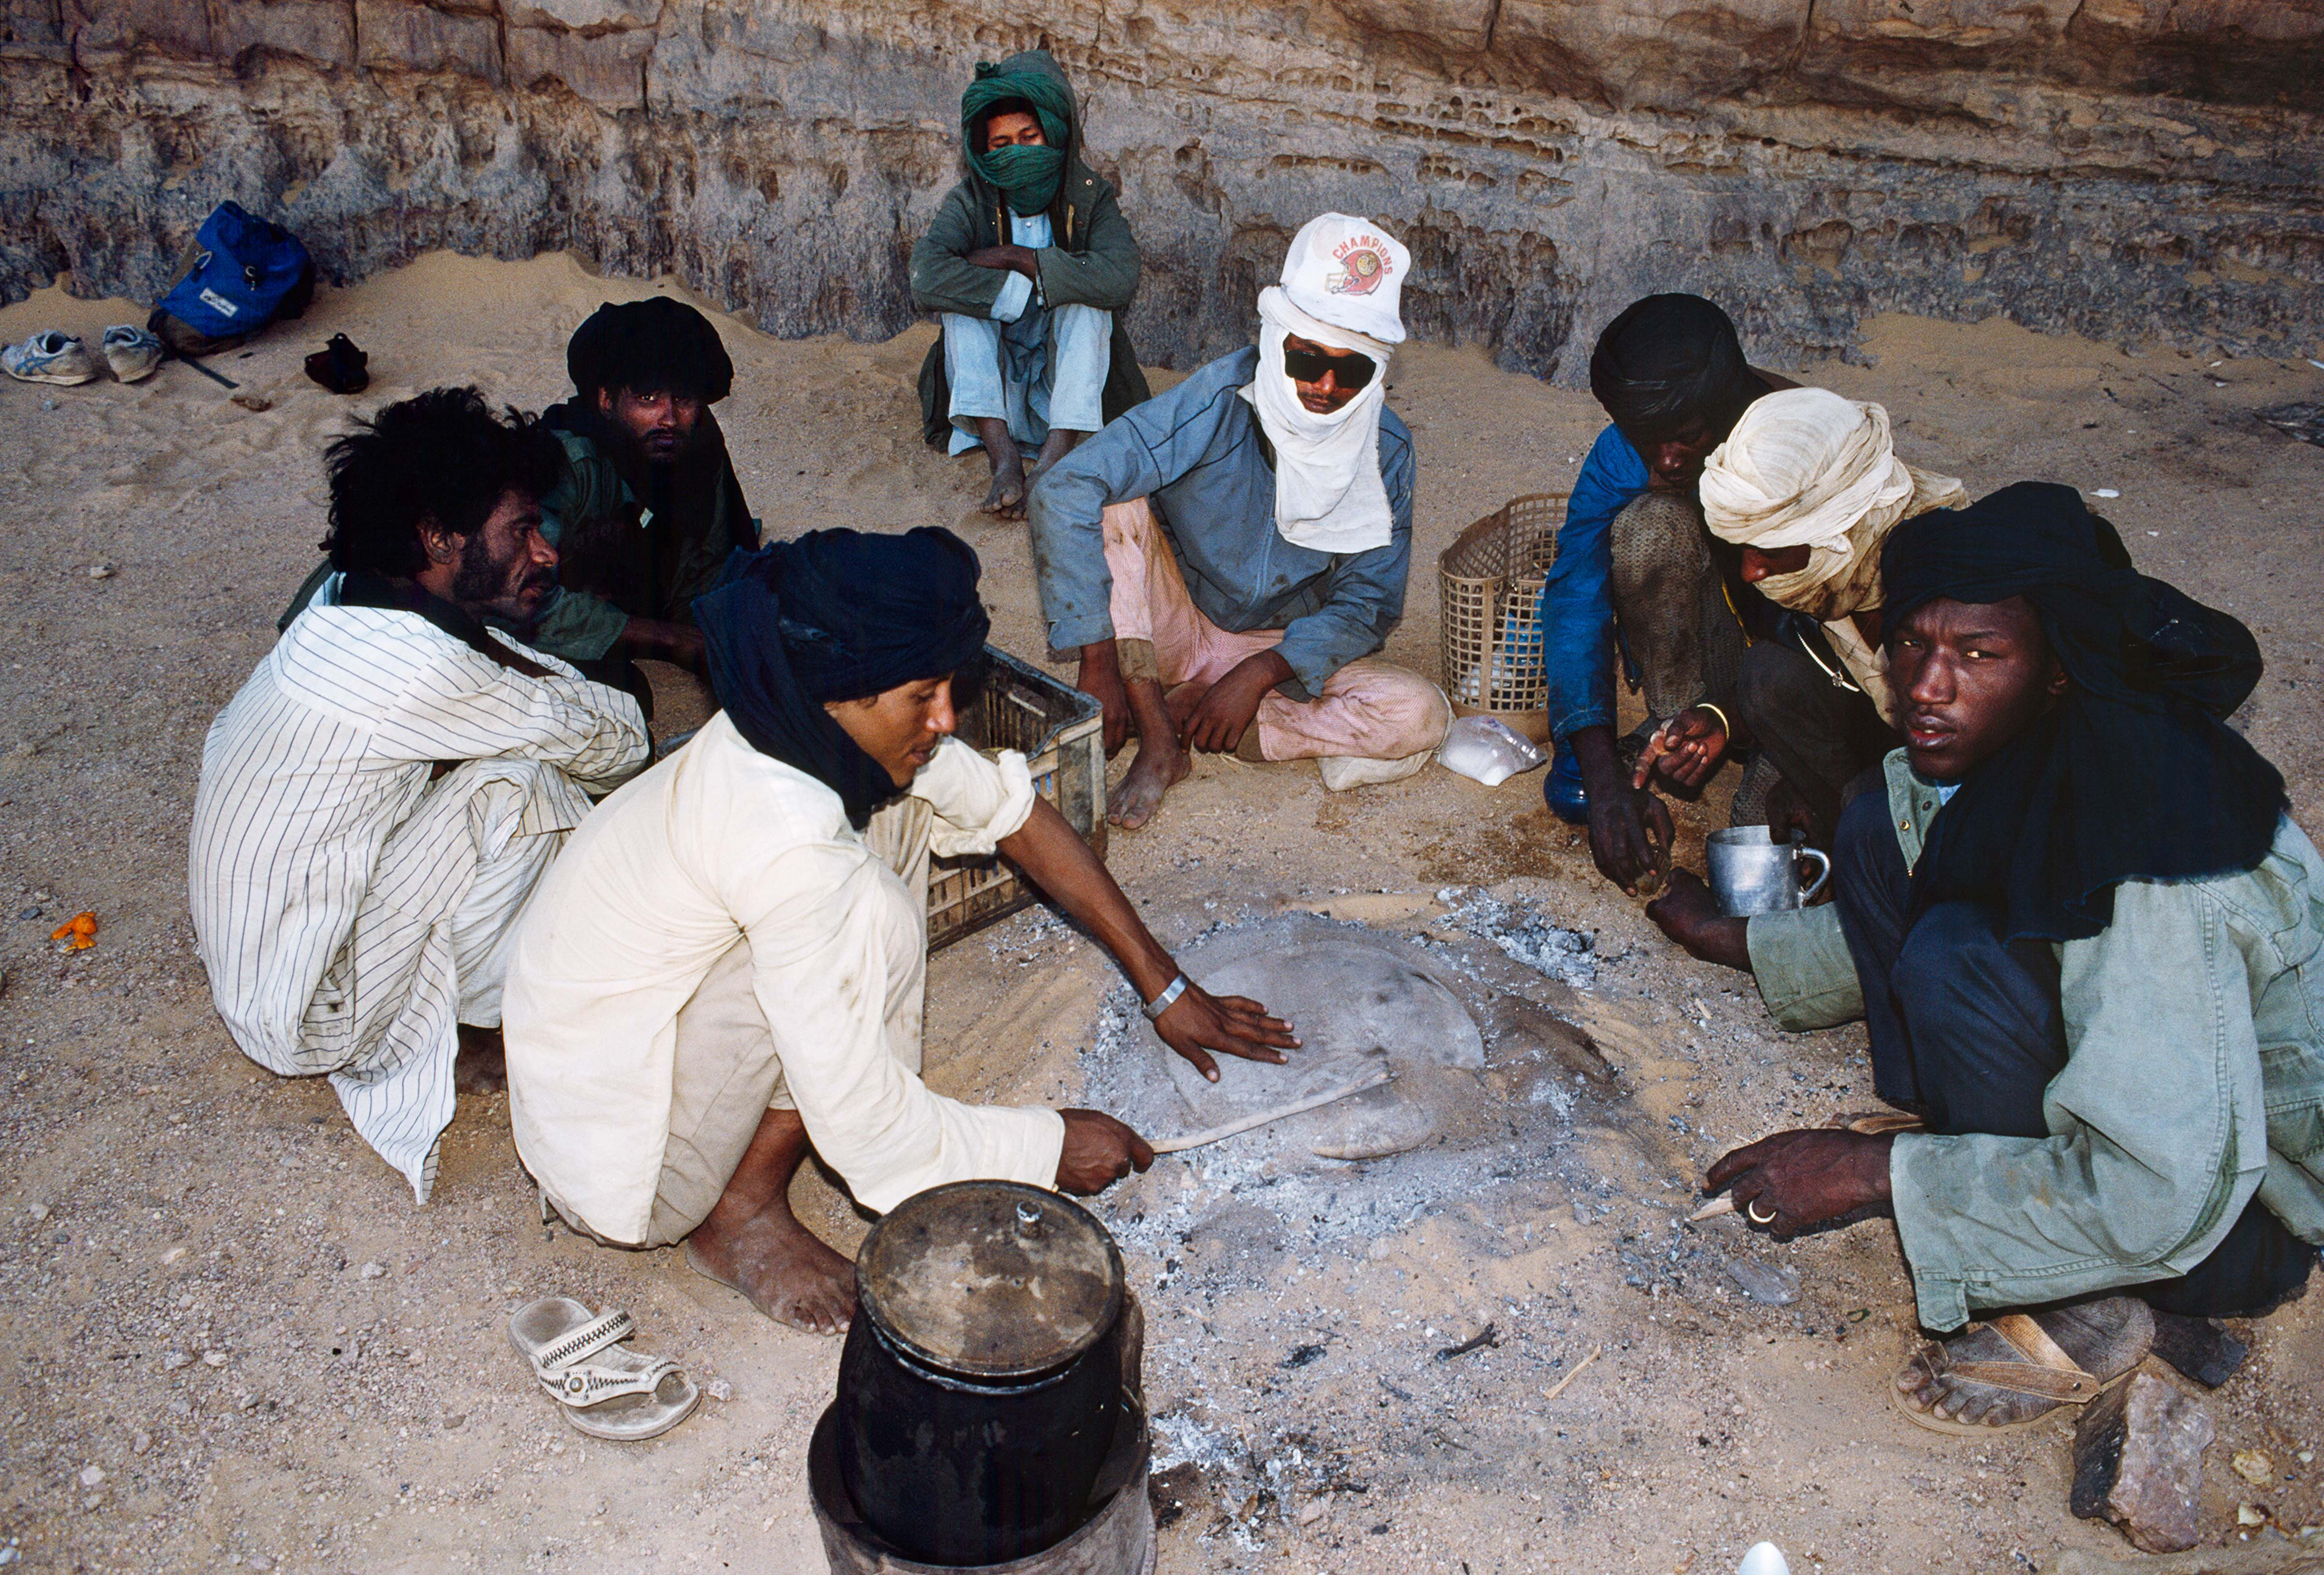 Cooking Bread in the Sand – One